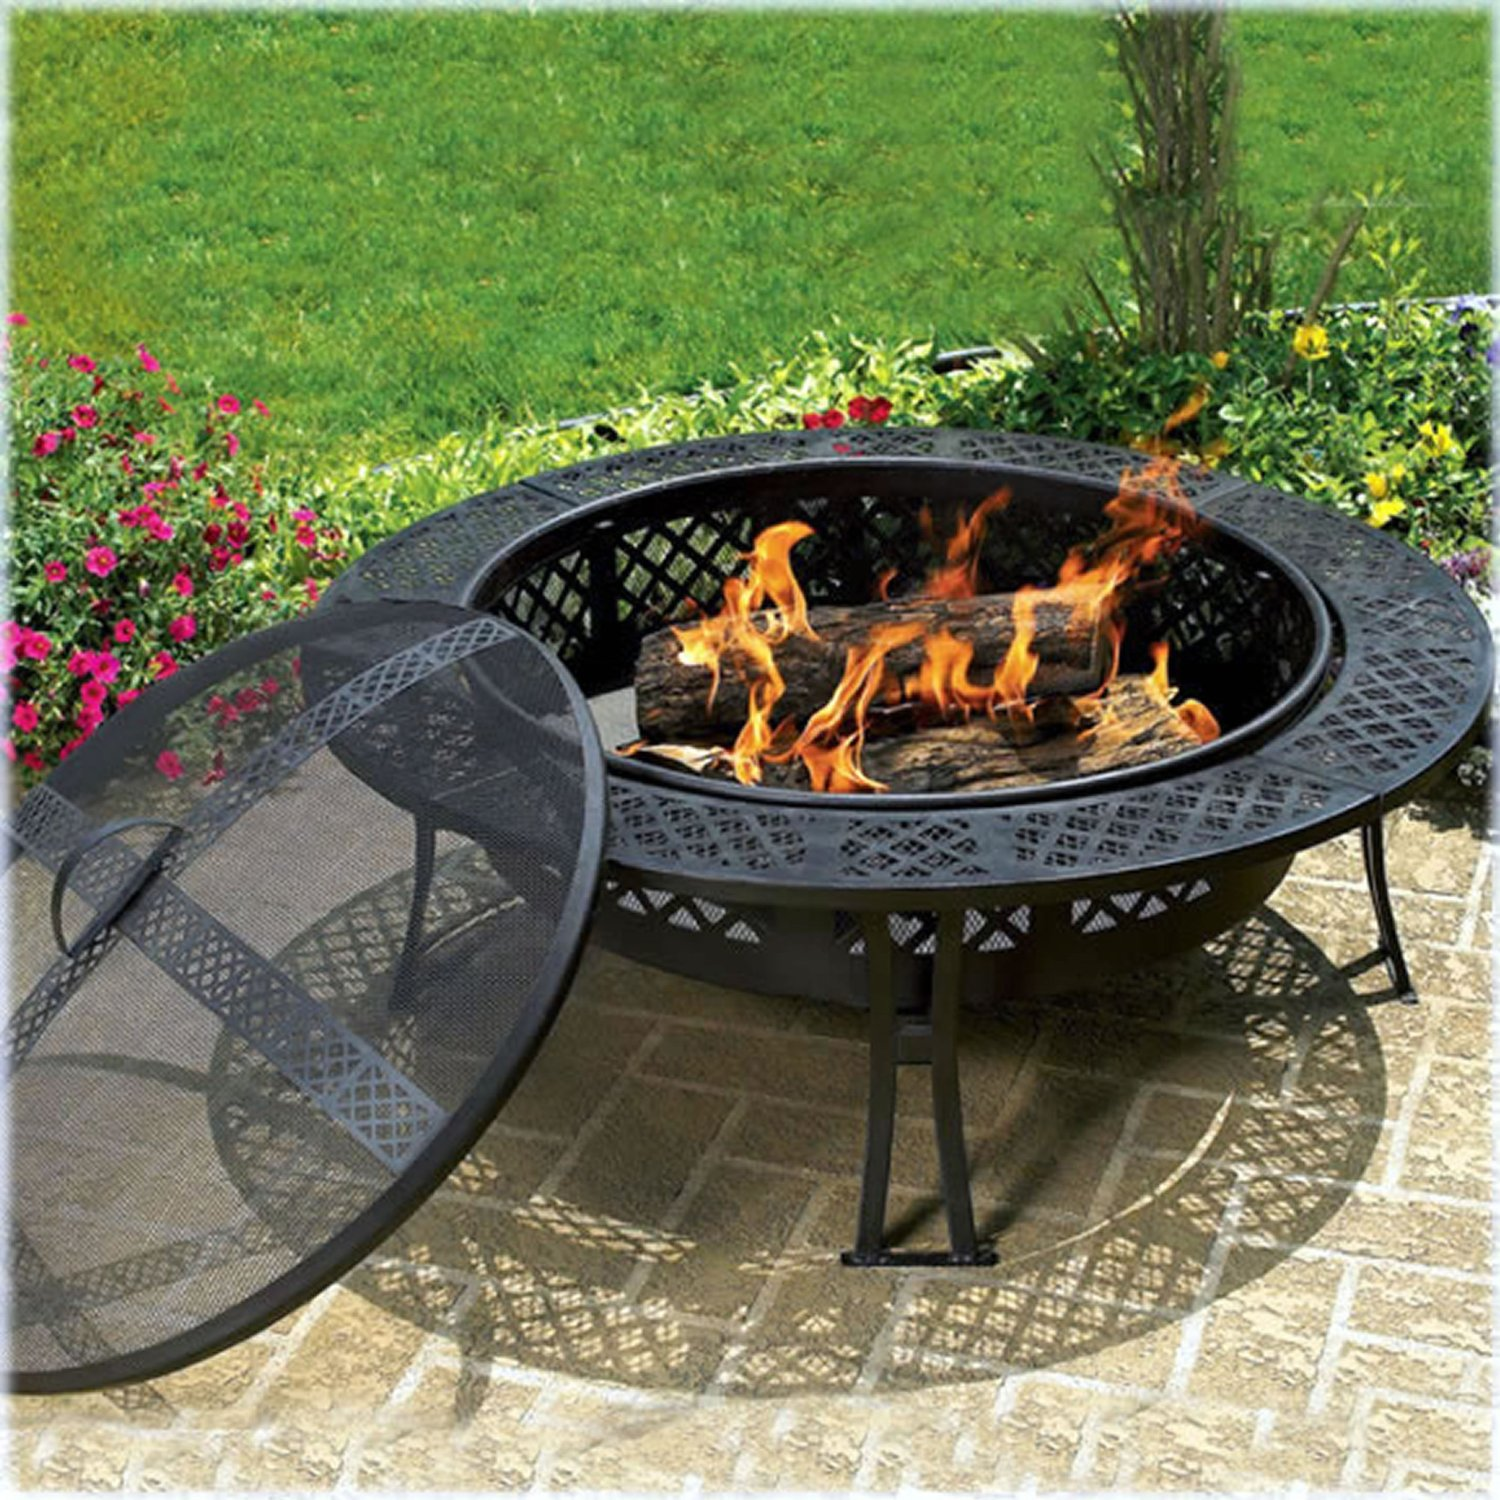 CobraCo Diamond Mesh Fire Pit with Screen and Cover